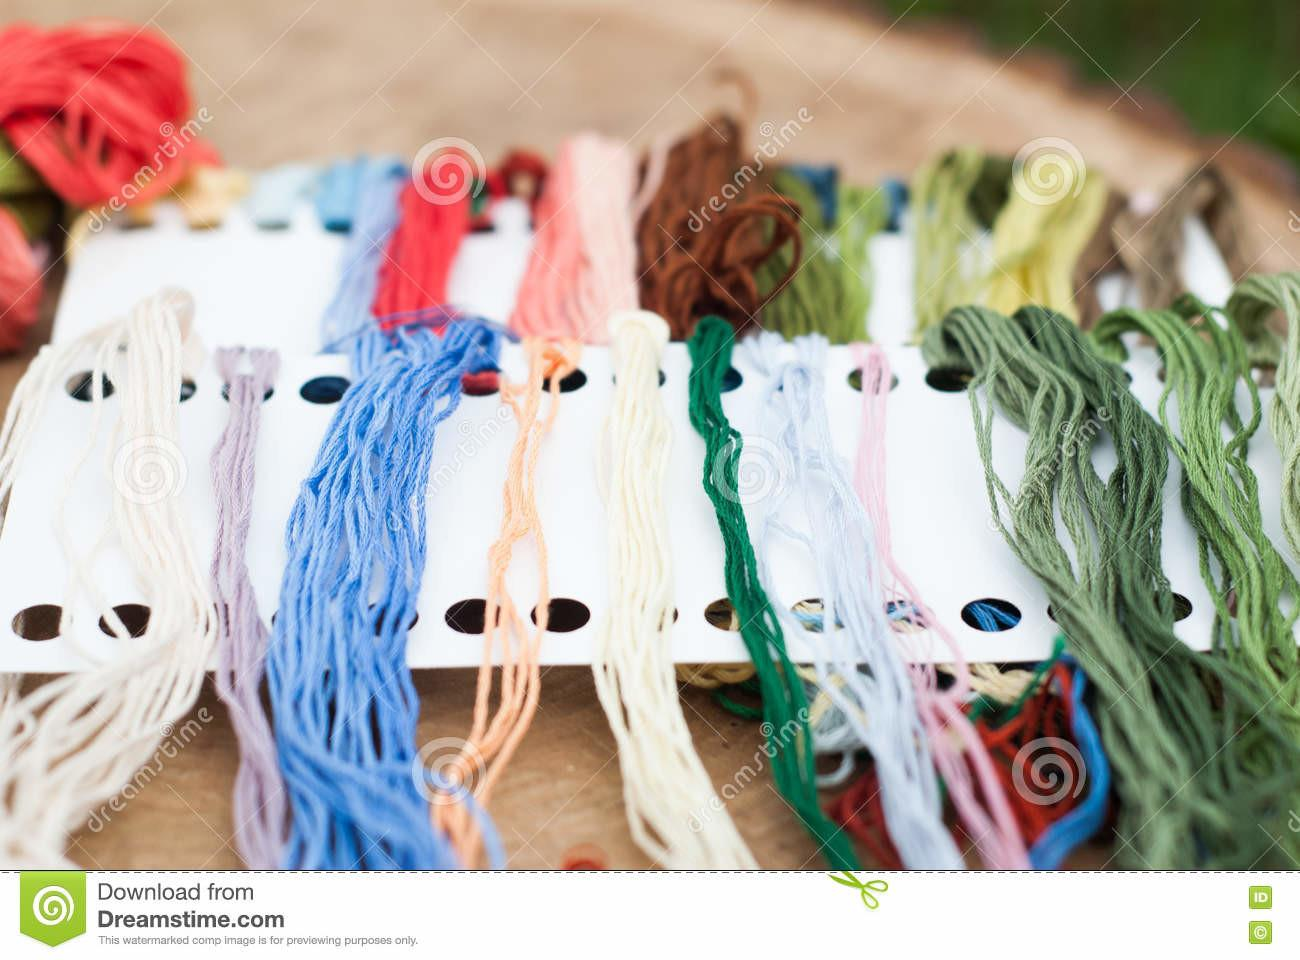 Colorful Yarn Crafts Stock